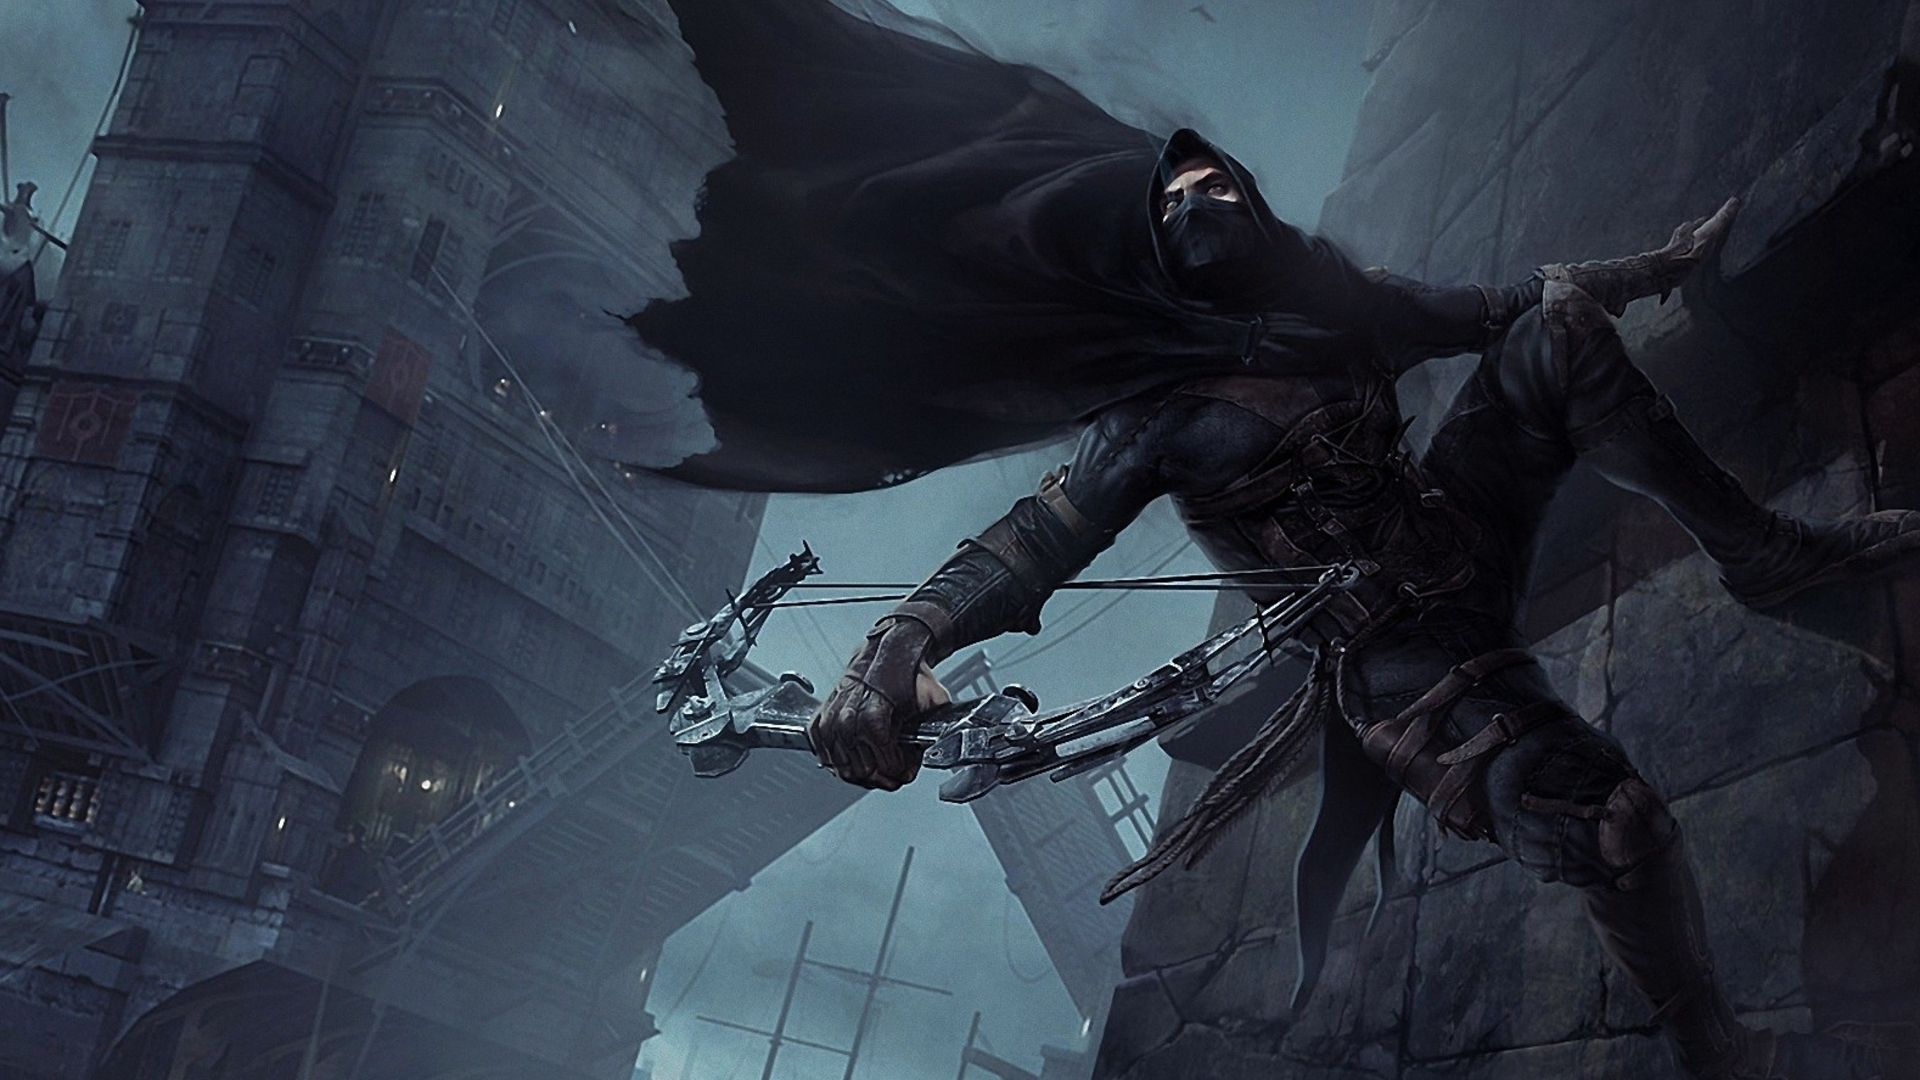 How Thief has changed, for better and for worse